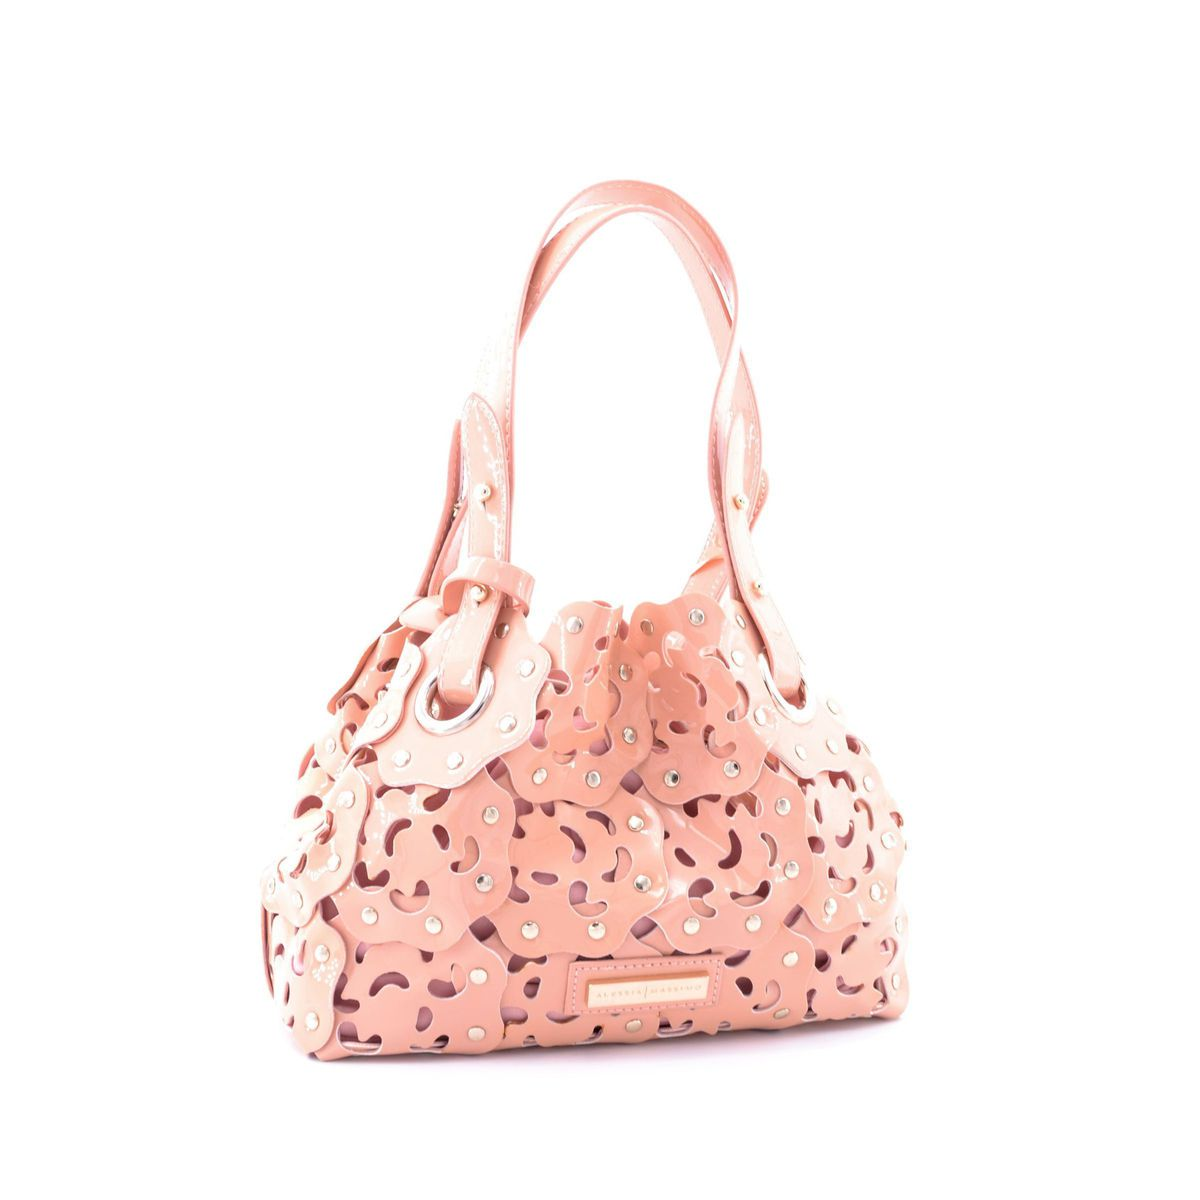 Pic pvc bag with stylized flowers Pink Alessia Massimo